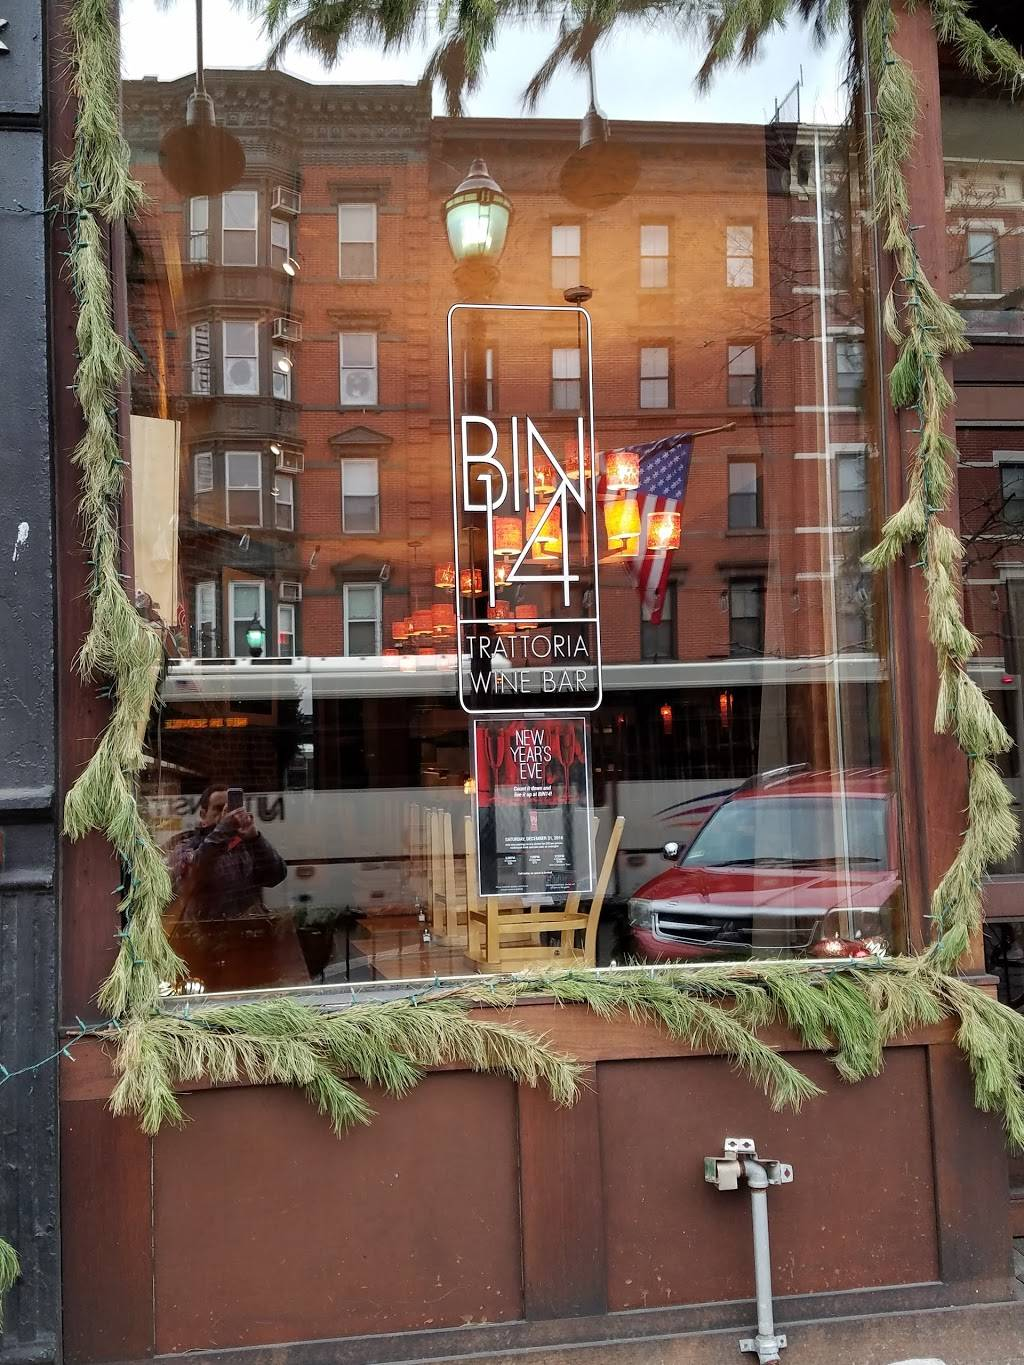 Bin 14 | restaurant | 1314 Washington St, Hoboken, NJ 07030, USA | 2019639463 OR +1 201-963-9463